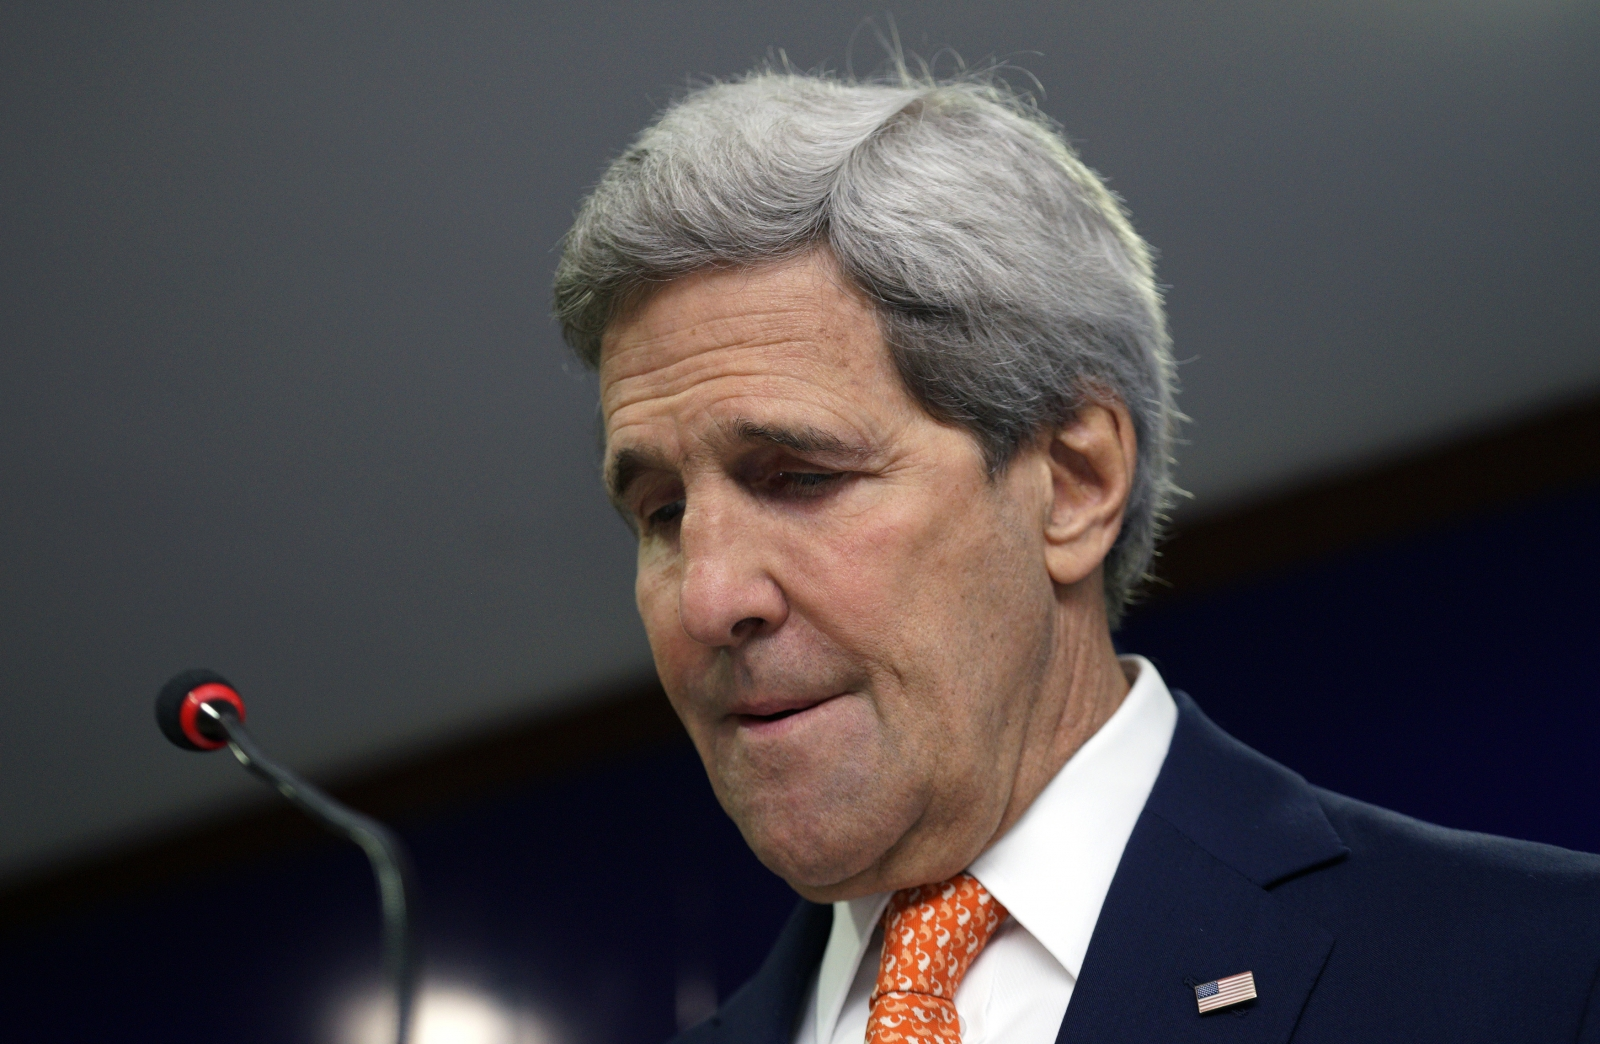 John Kerry set to visit Paris to condemn France attacks